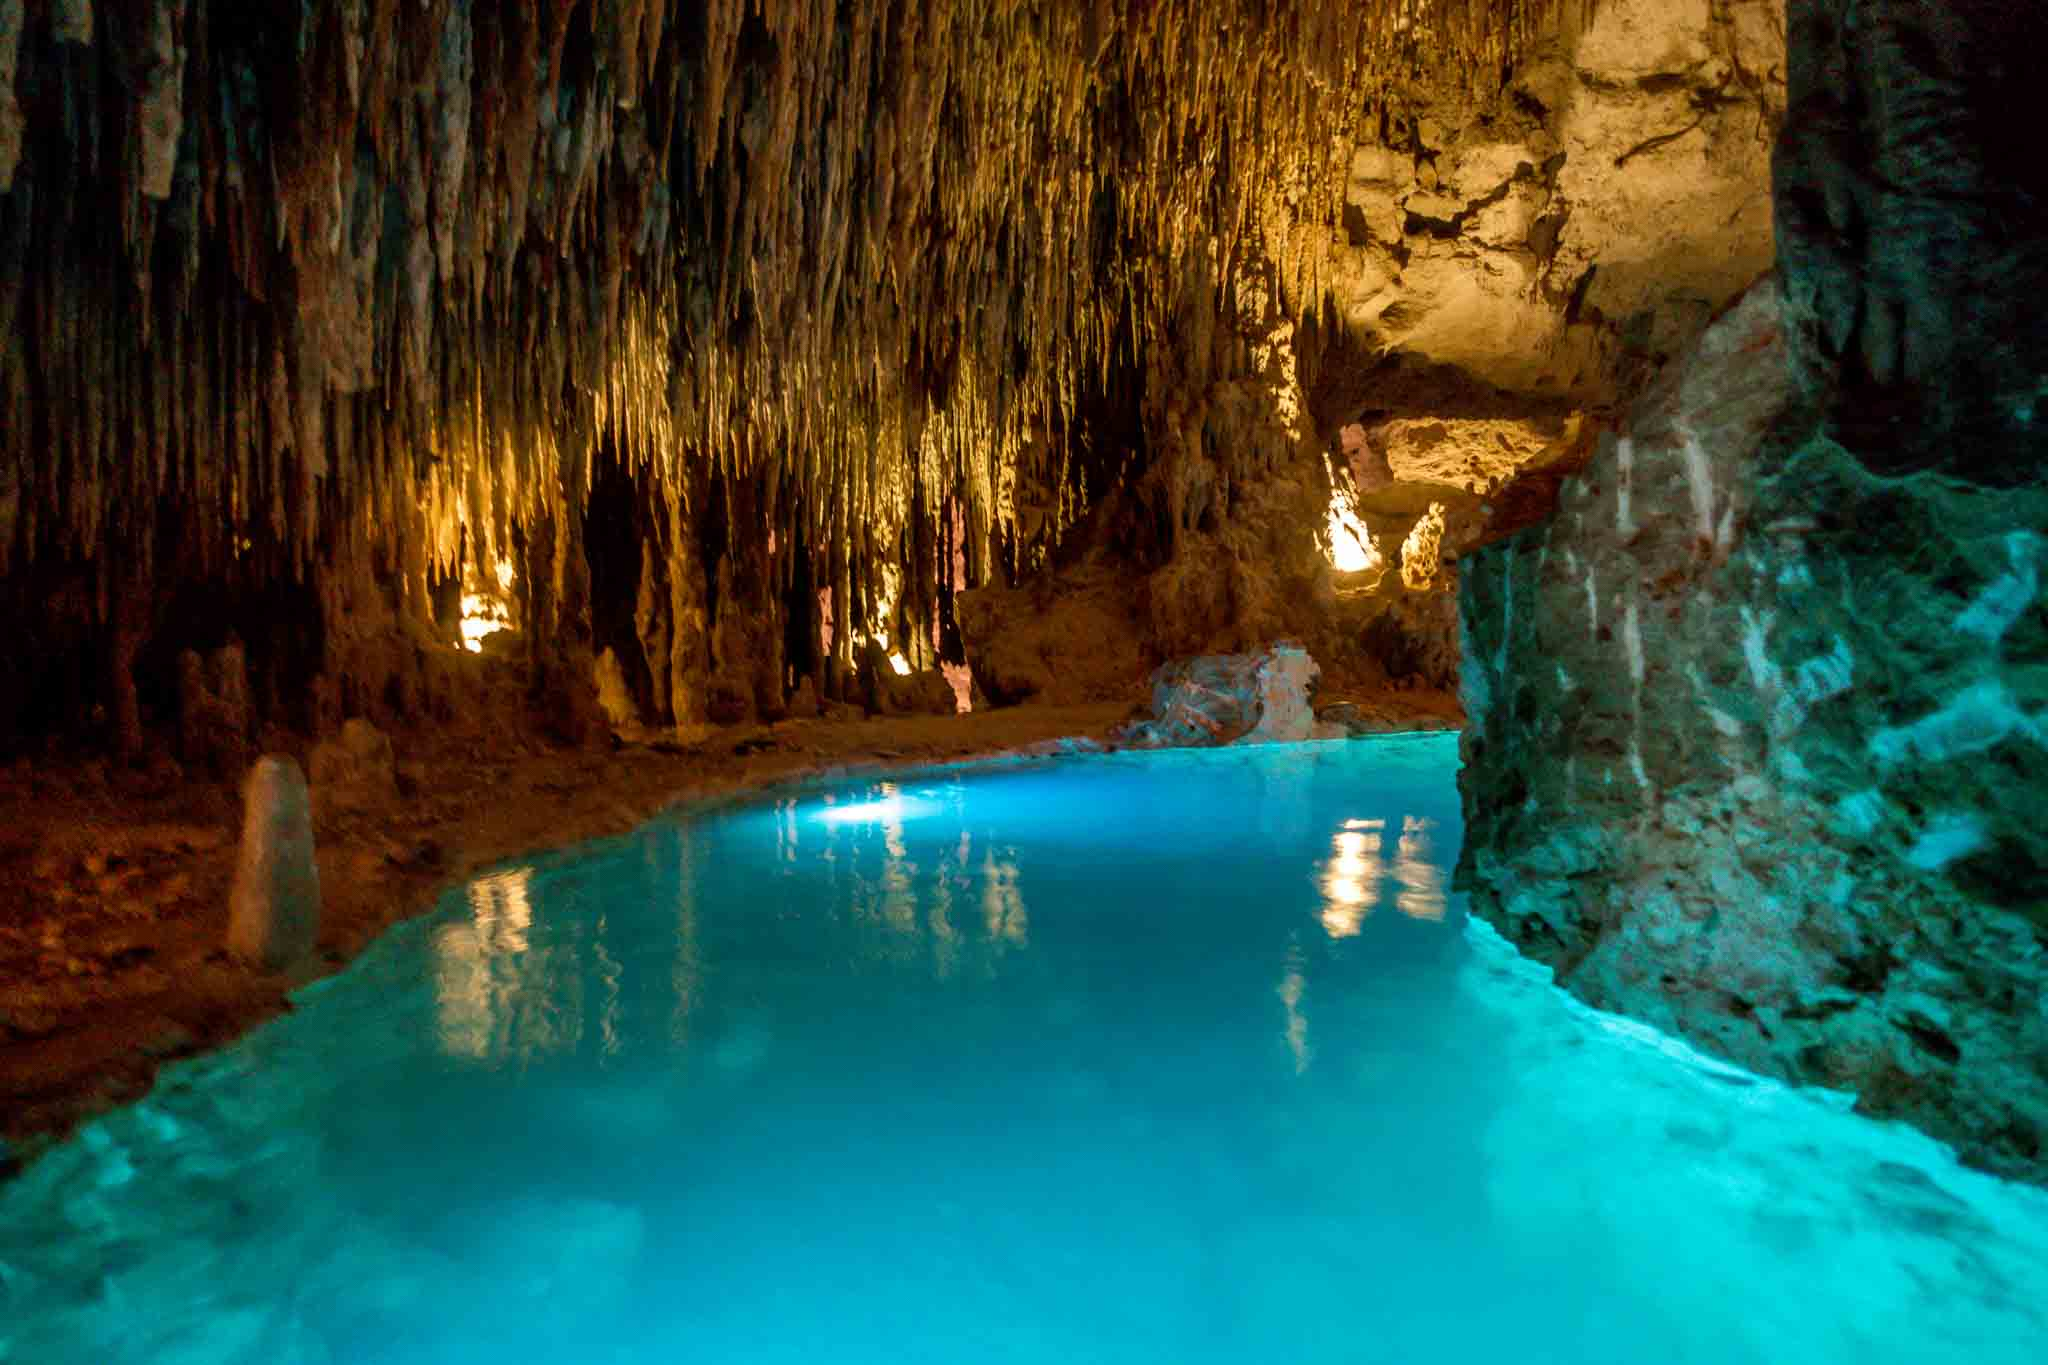 The underground rivers at Xplor adventure park in Playa del Carmen, Mexico, look like they're from another world. Spending a day at this lively adventure theme park is a great alternative to a beach day.